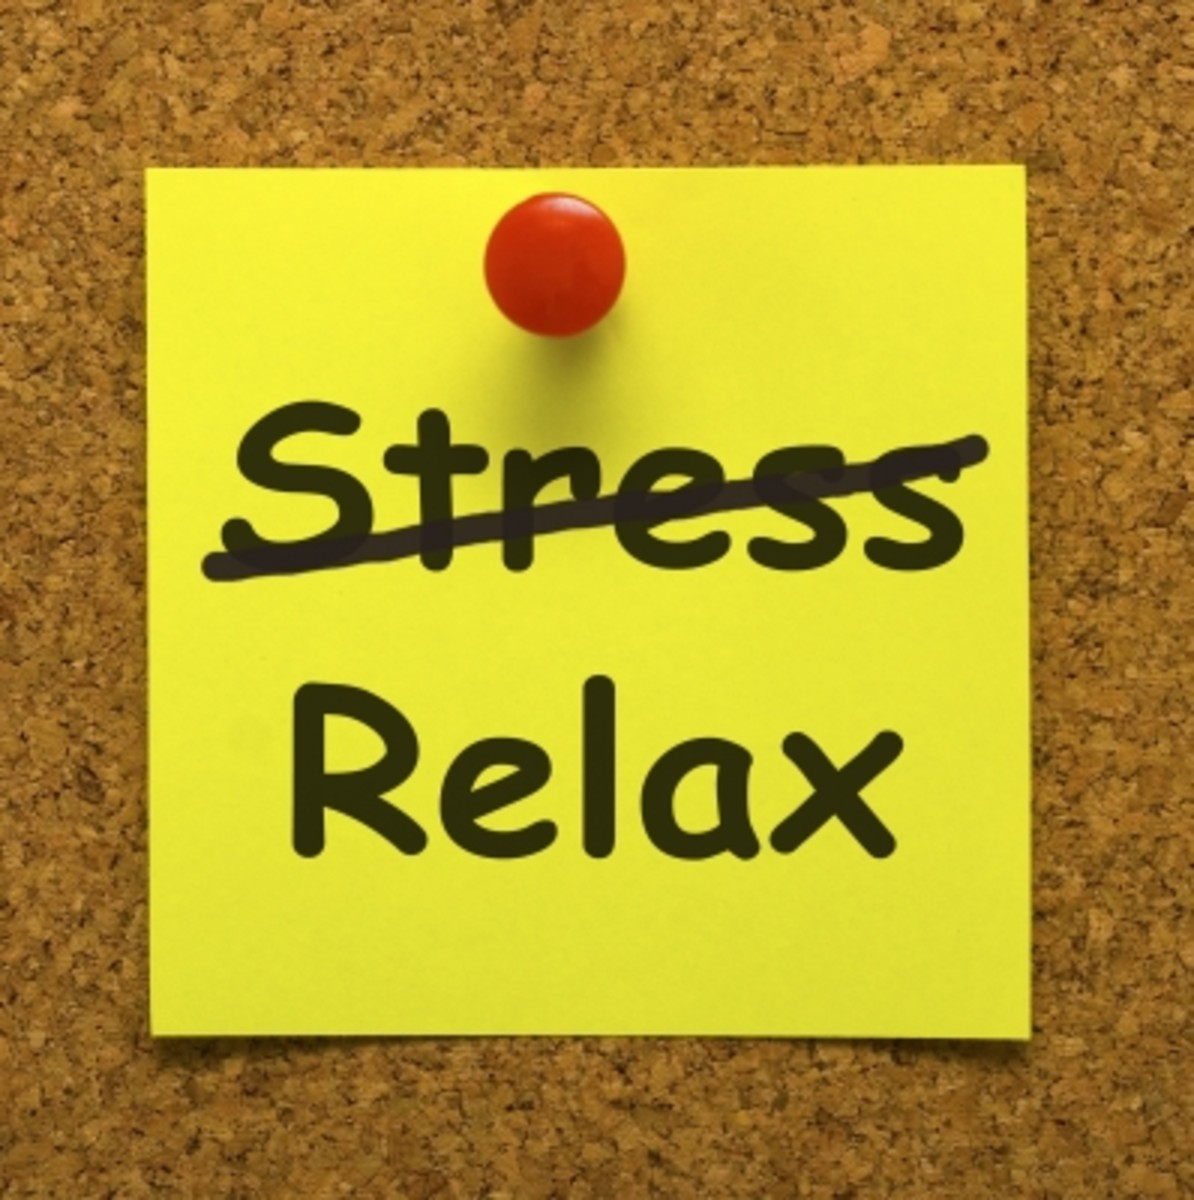 Choose relaxation over stress.